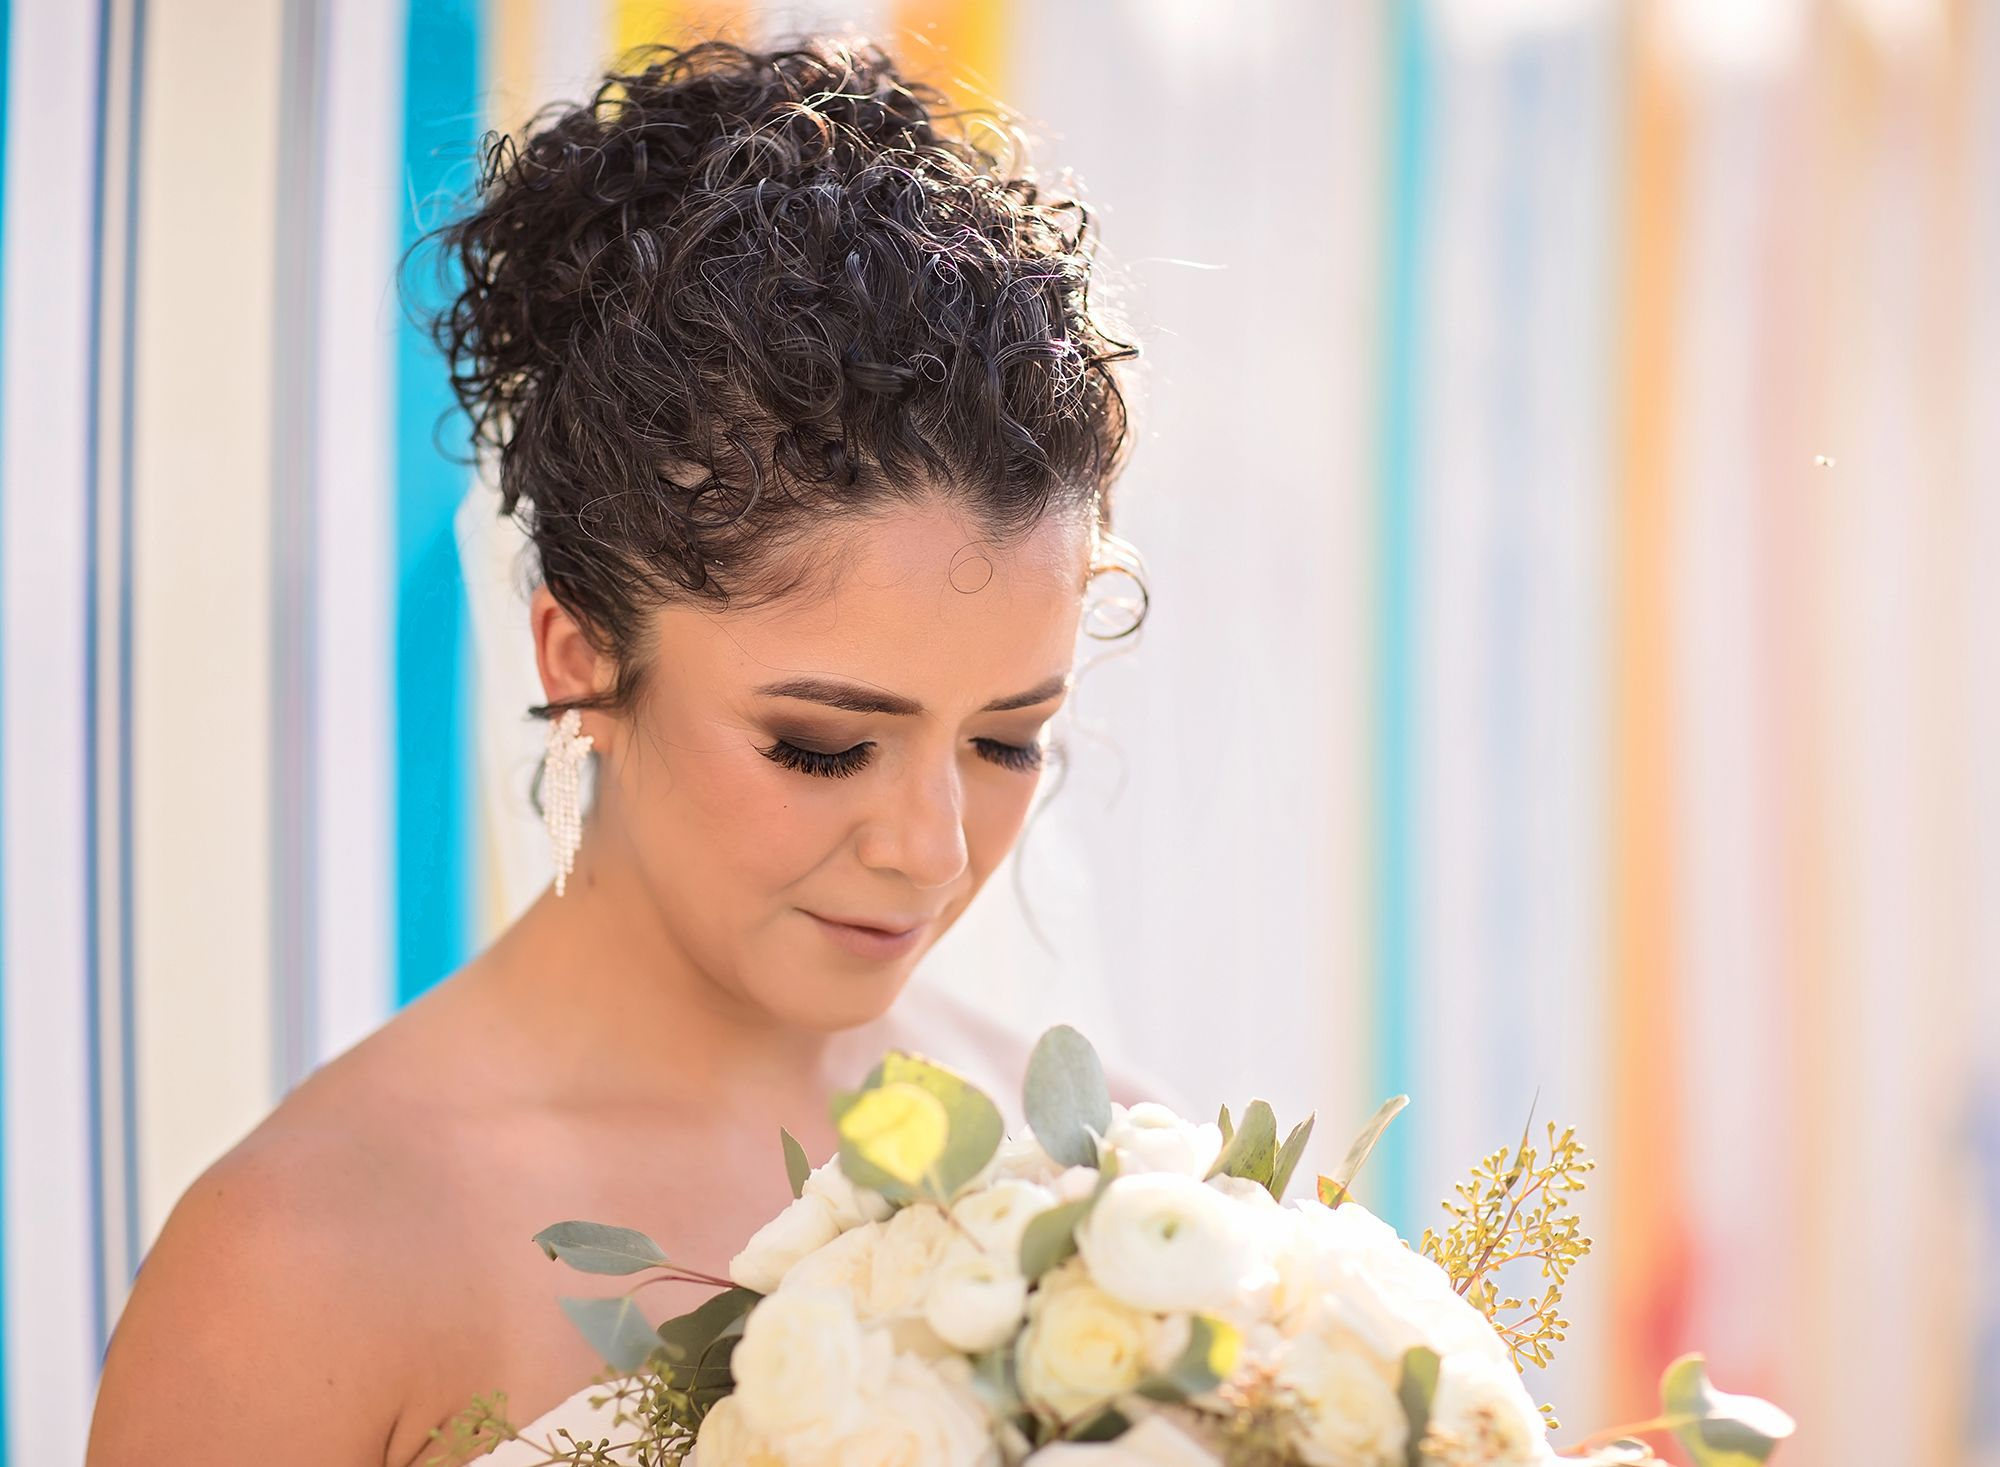 A bride tilts her head down looking at a bridal bouquet in front of a colorful array of classic surfboards at her lakeside wedding at Margaritaville Resort, Lake Conroe.